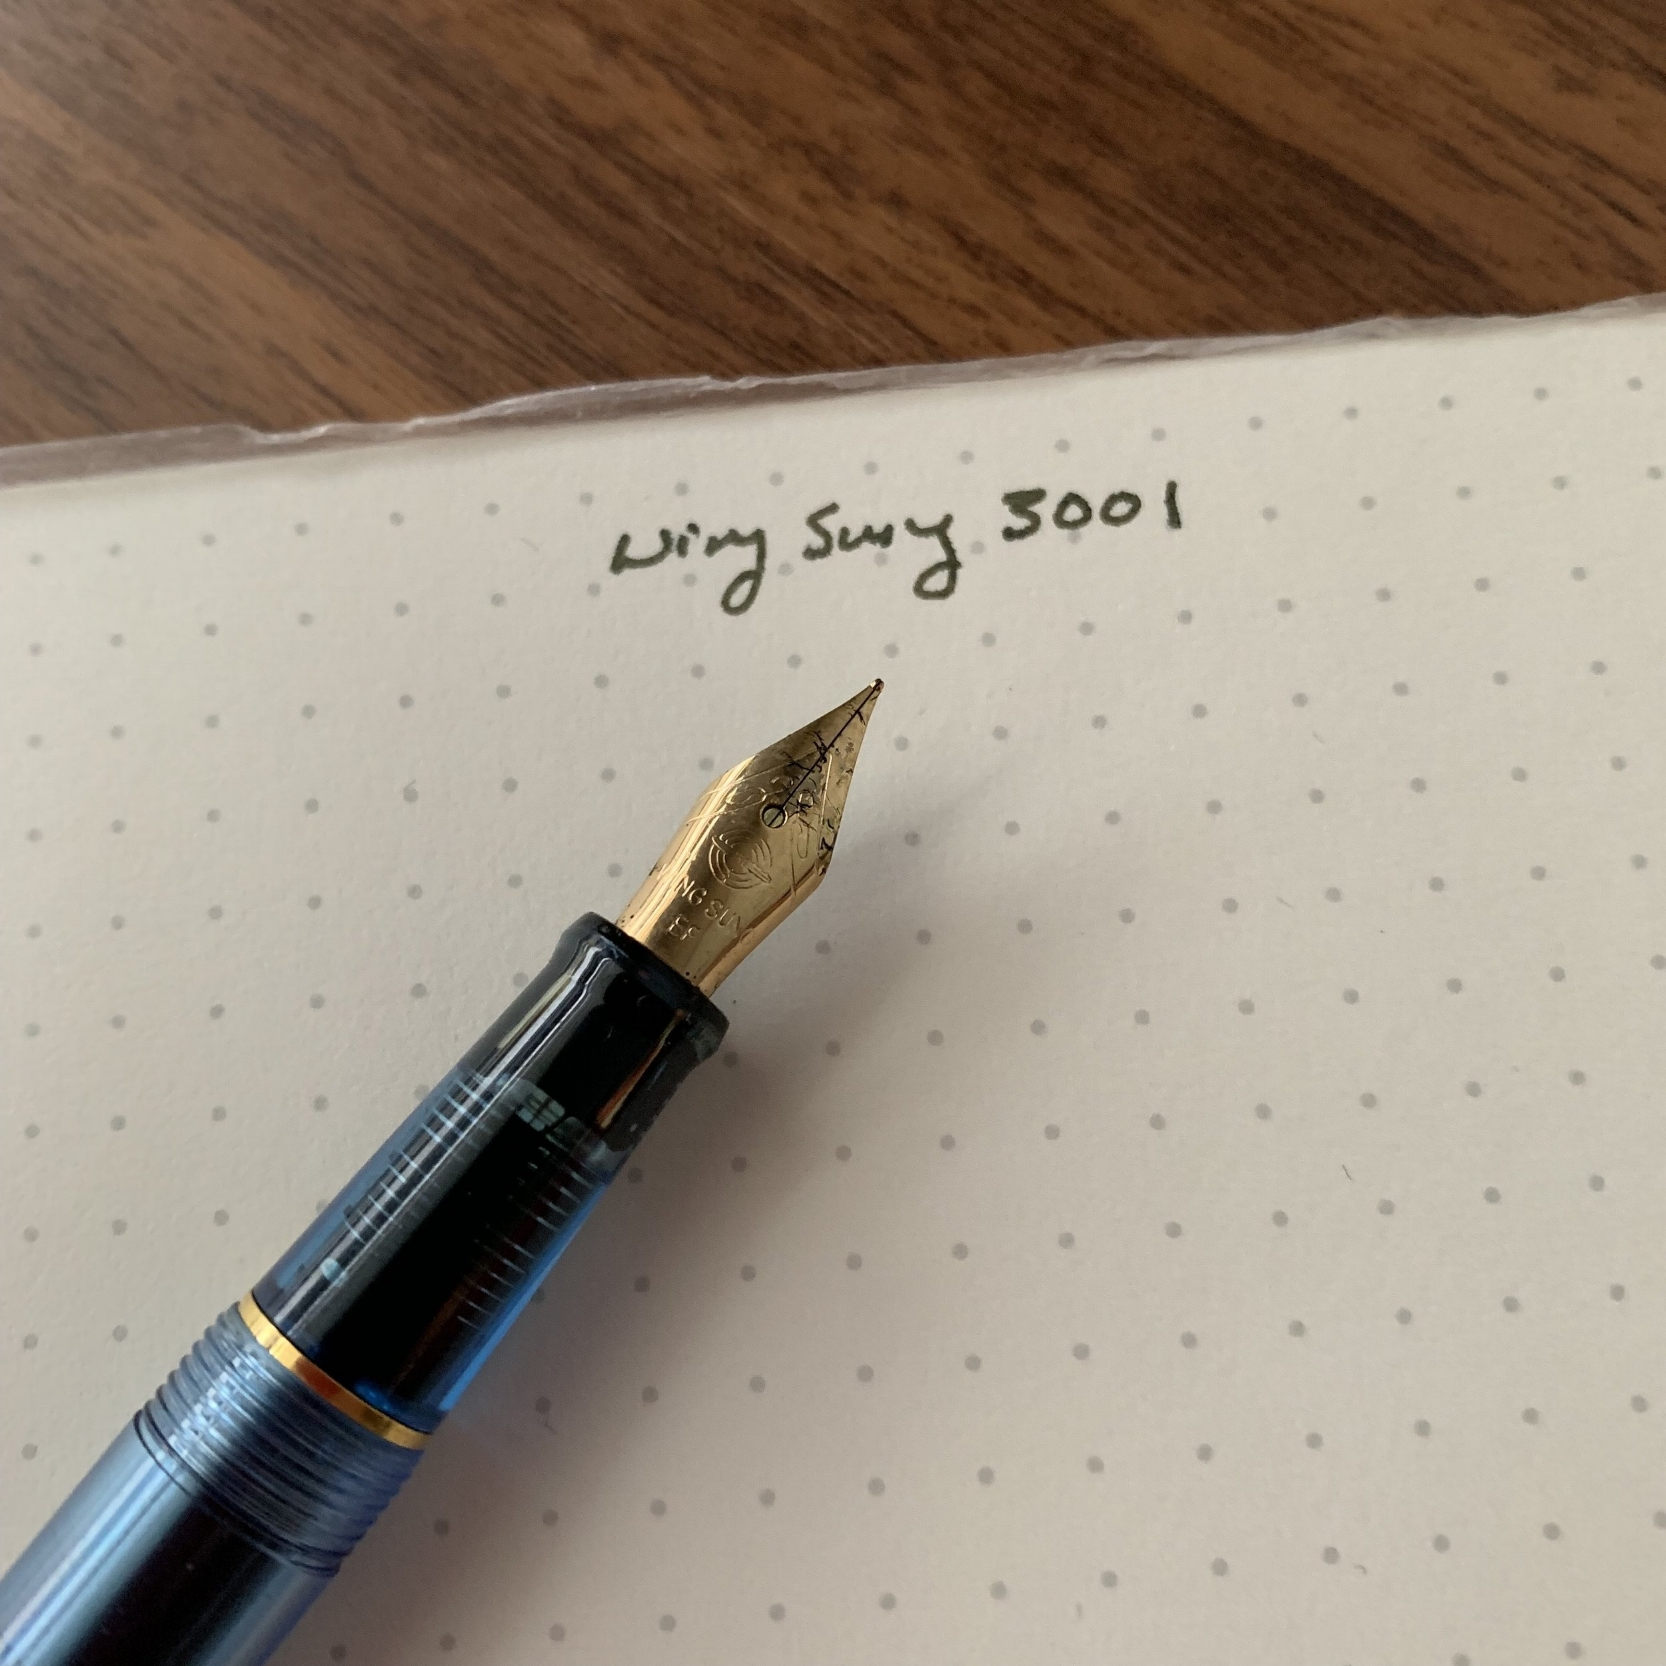 Wing Sung pens have excellent nibs, in my experience. Most are paired with a transparent plastic feed.